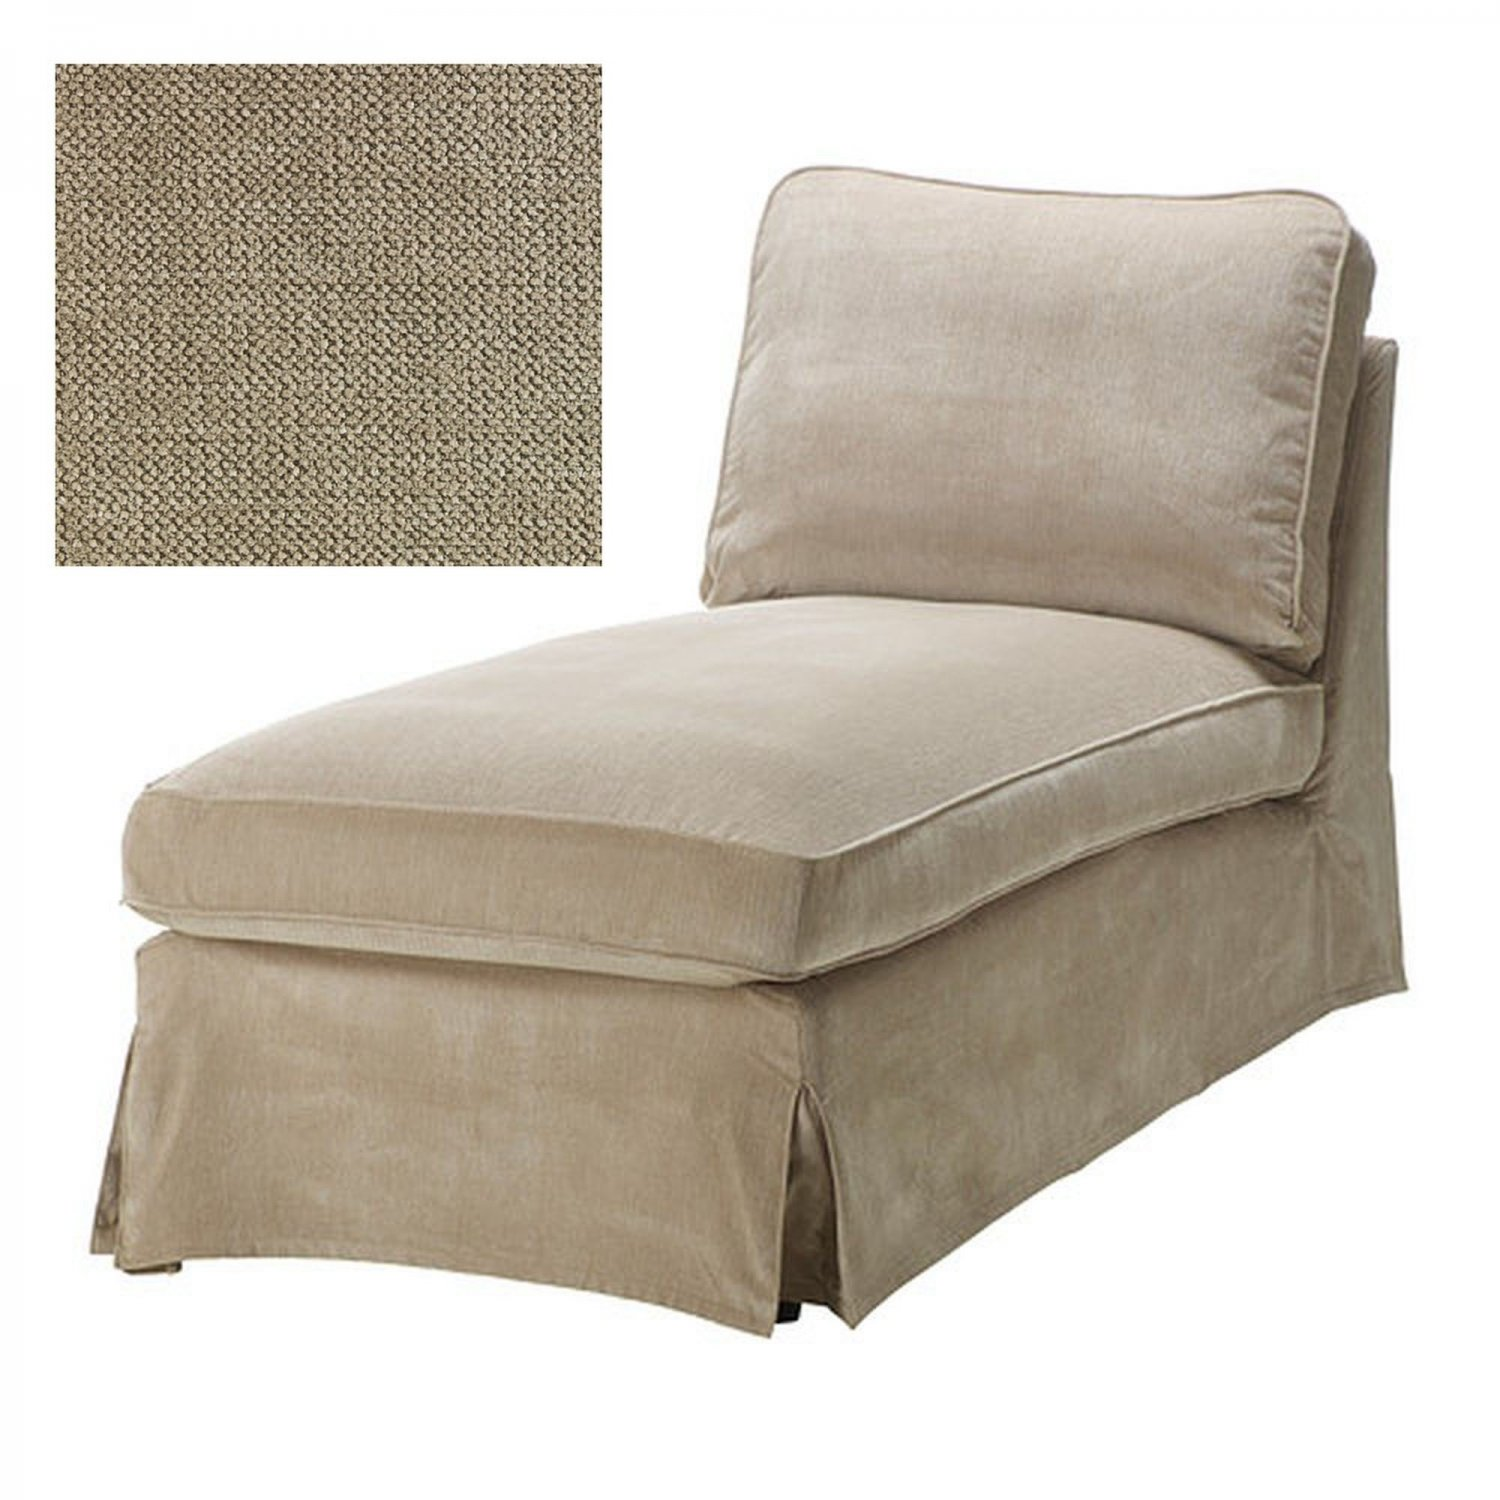 Ikea ektorp chaise longue cover slipcover vellinge beige for Chaise longue lockheed lounge